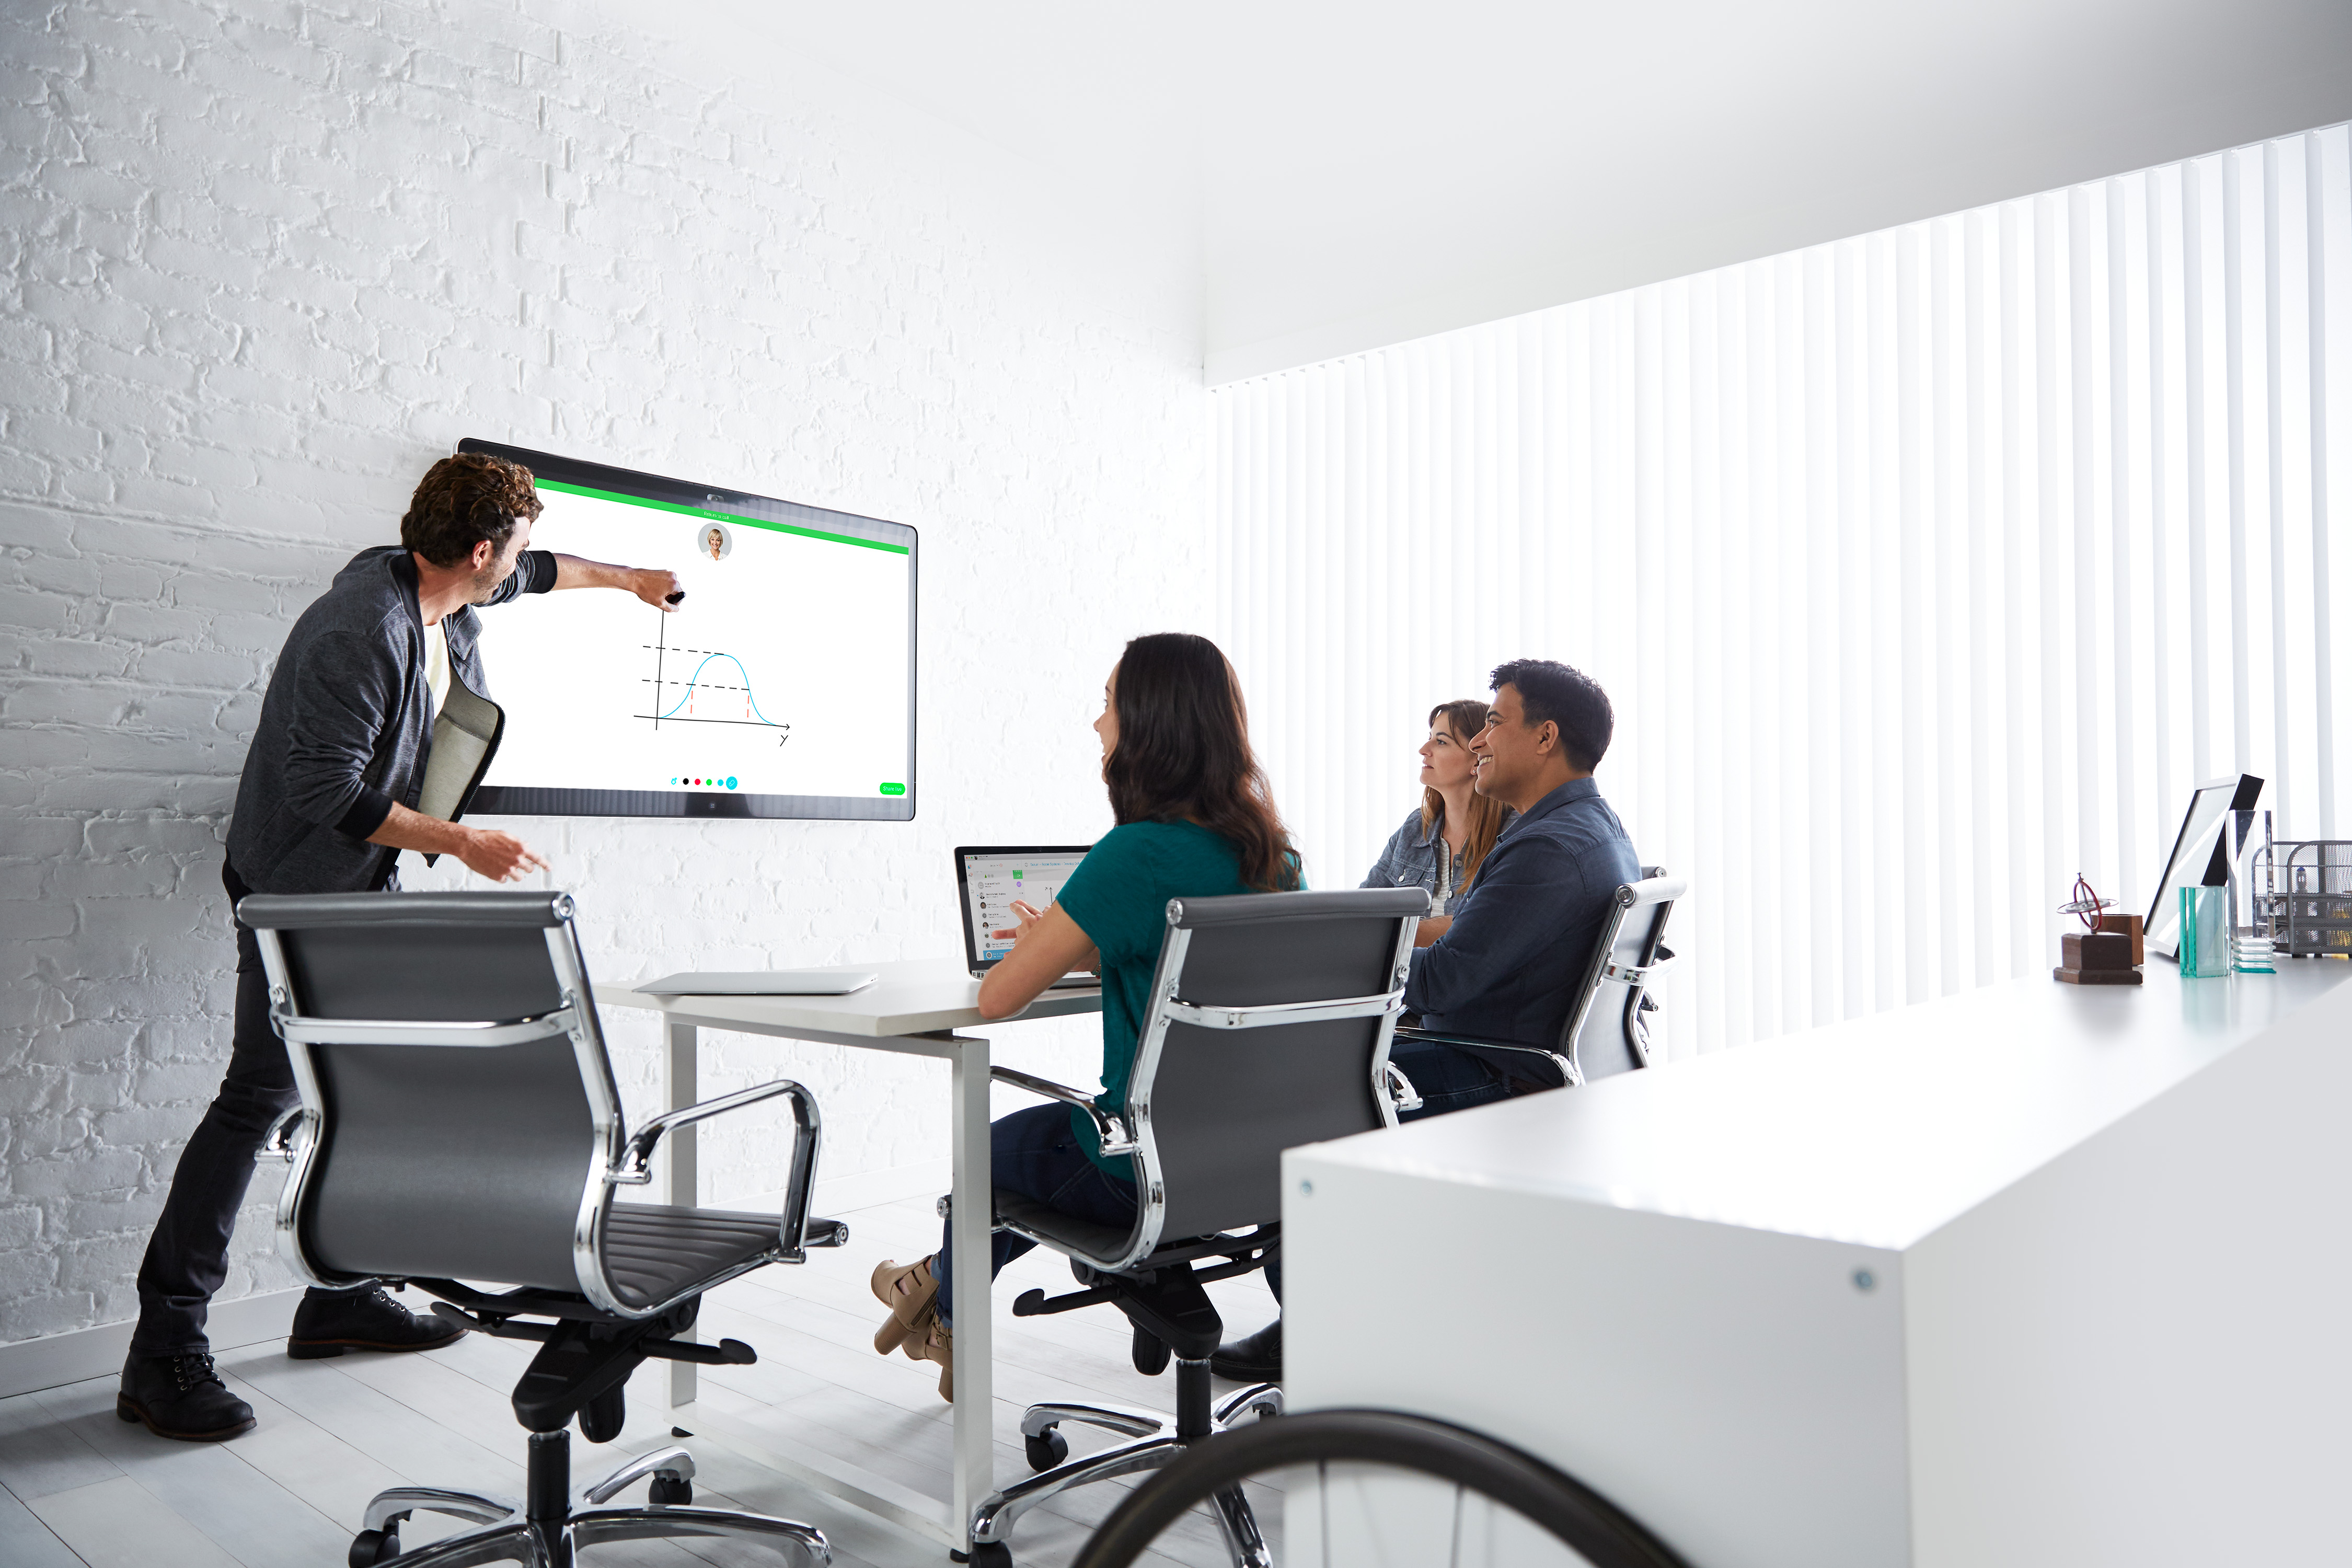 Cisco debuts its own smart whiteboard priced to compete with